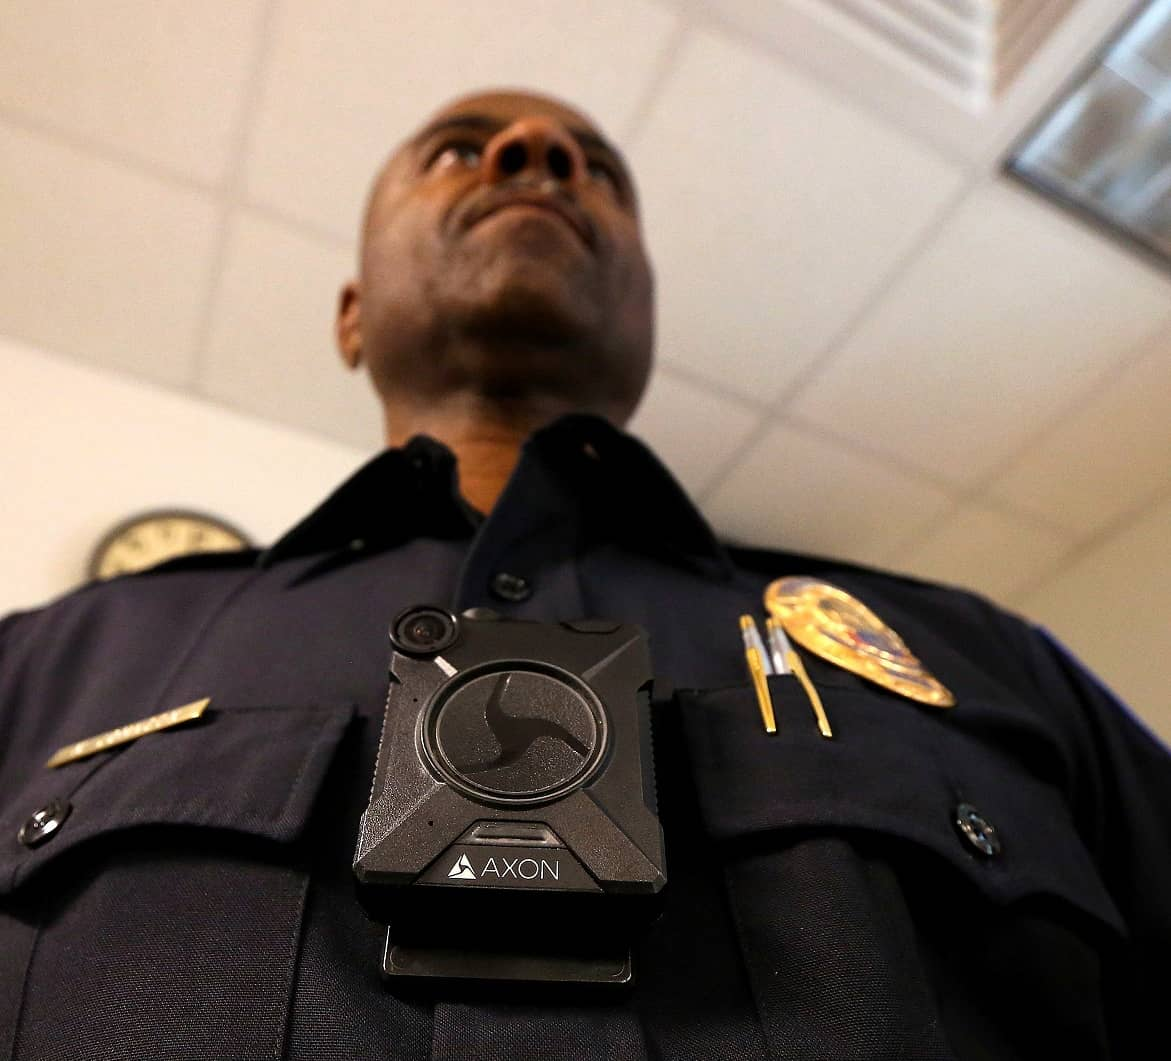 NEW MEXICO LAWMAKERS BACK MANDATORY POLICE BODY CAMERAS